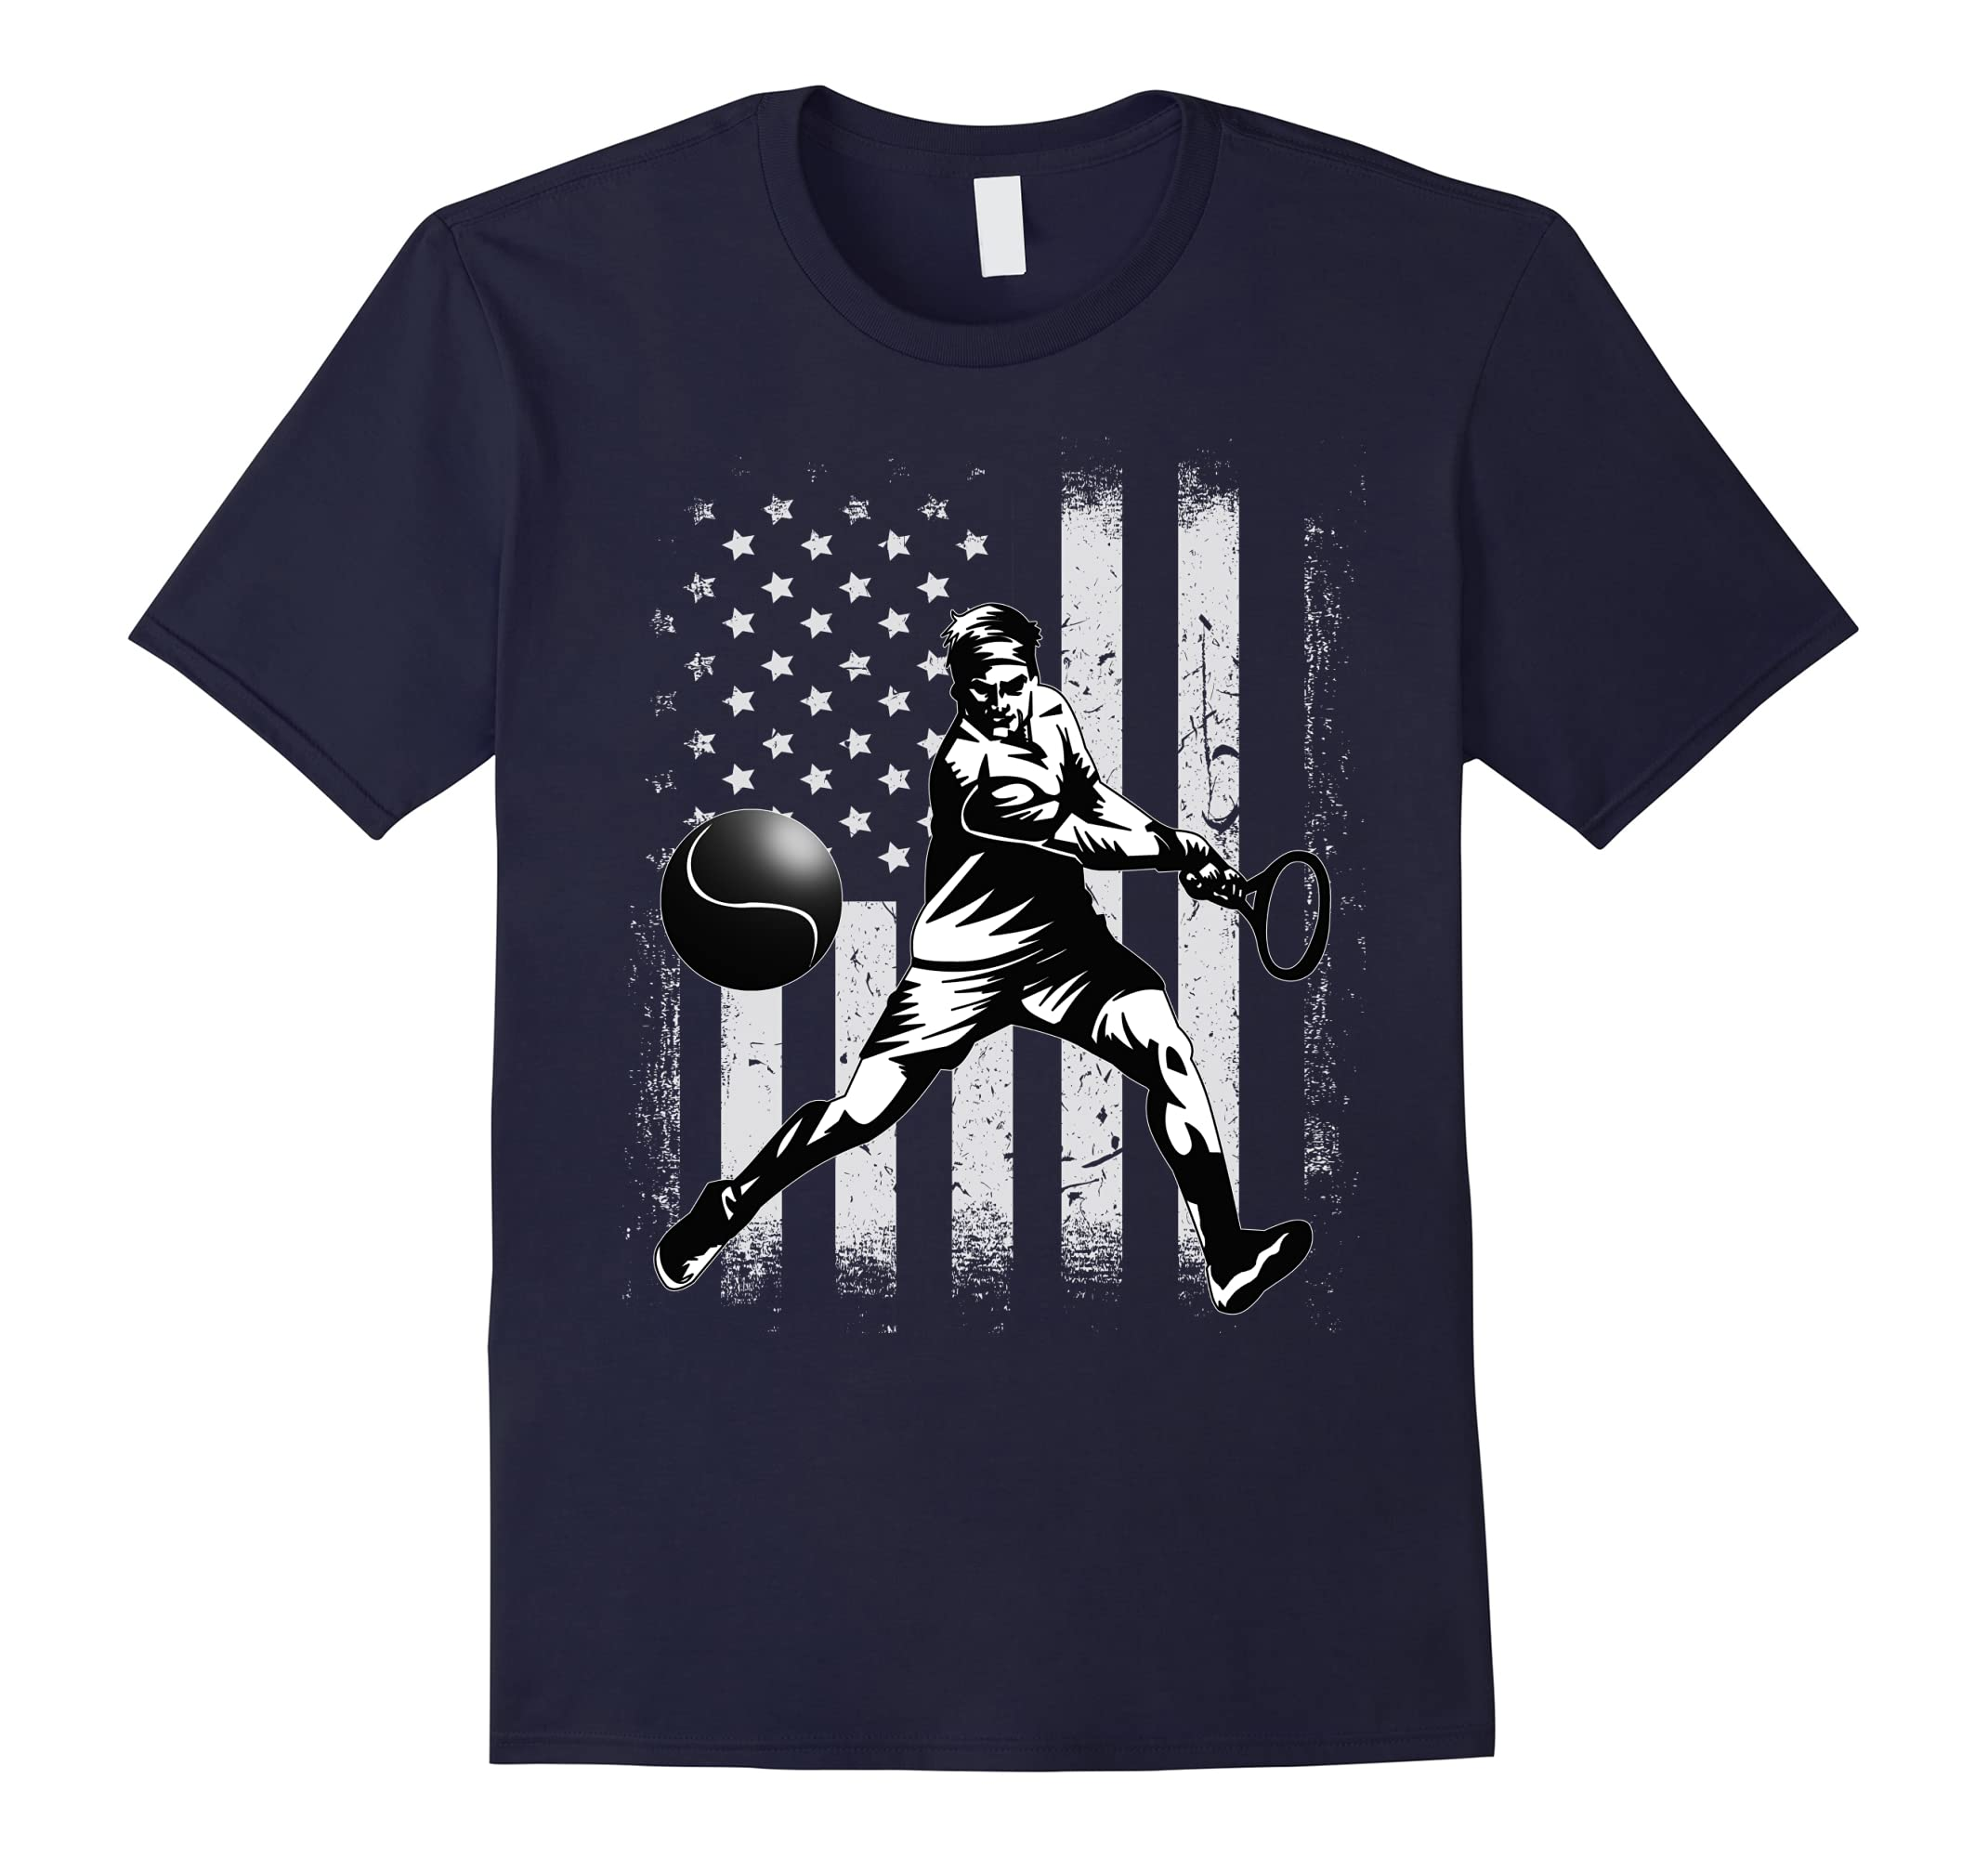 Vintage USA White - American Flag Tennis Player T-shirt-ah my shirt one gift